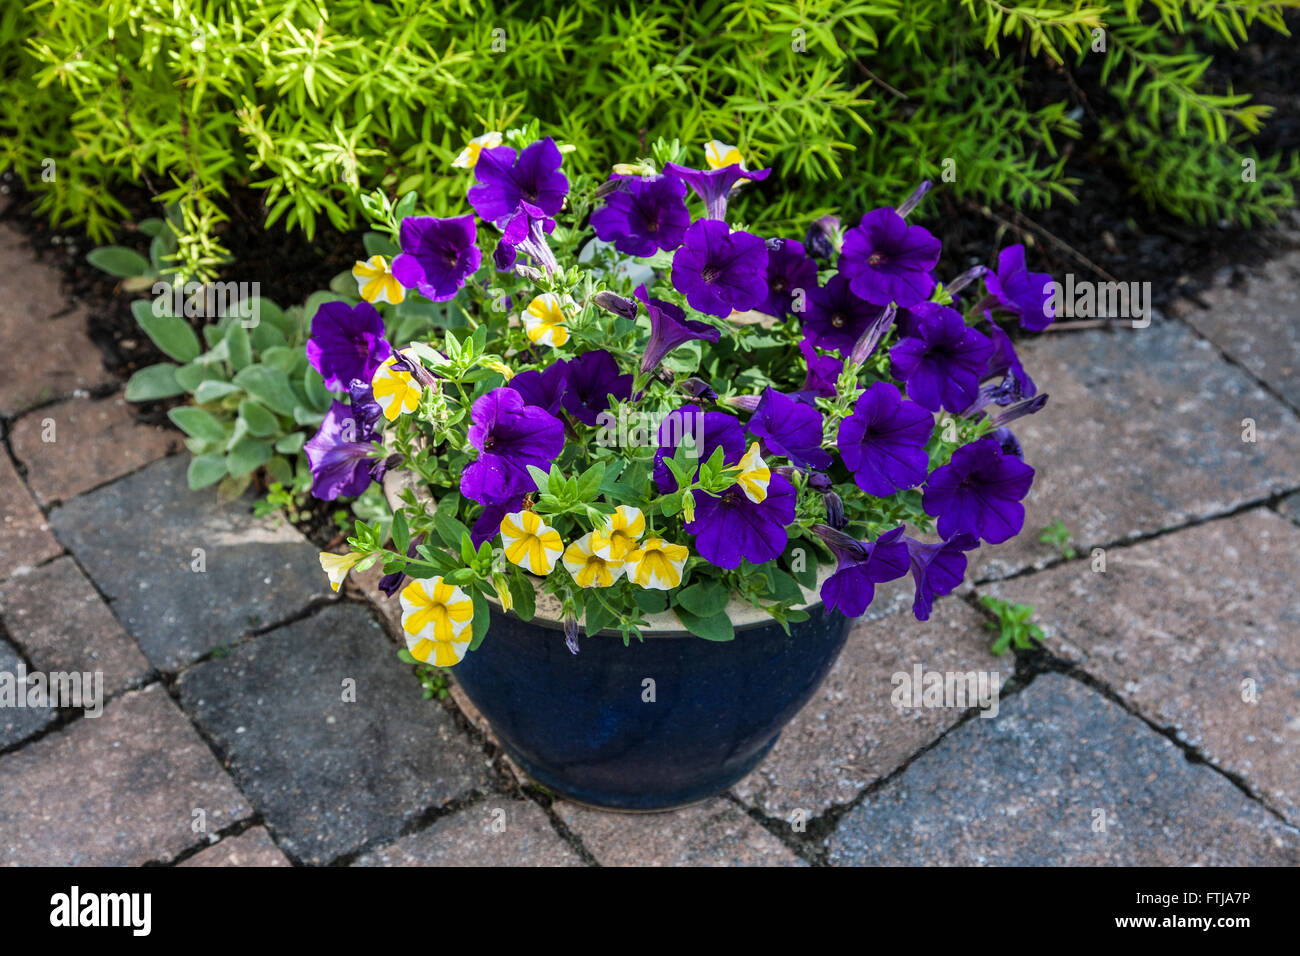 Flower Pot Of Purple And Yellow Petunia Flowers On A Brick Patio In New  Jersey, USA